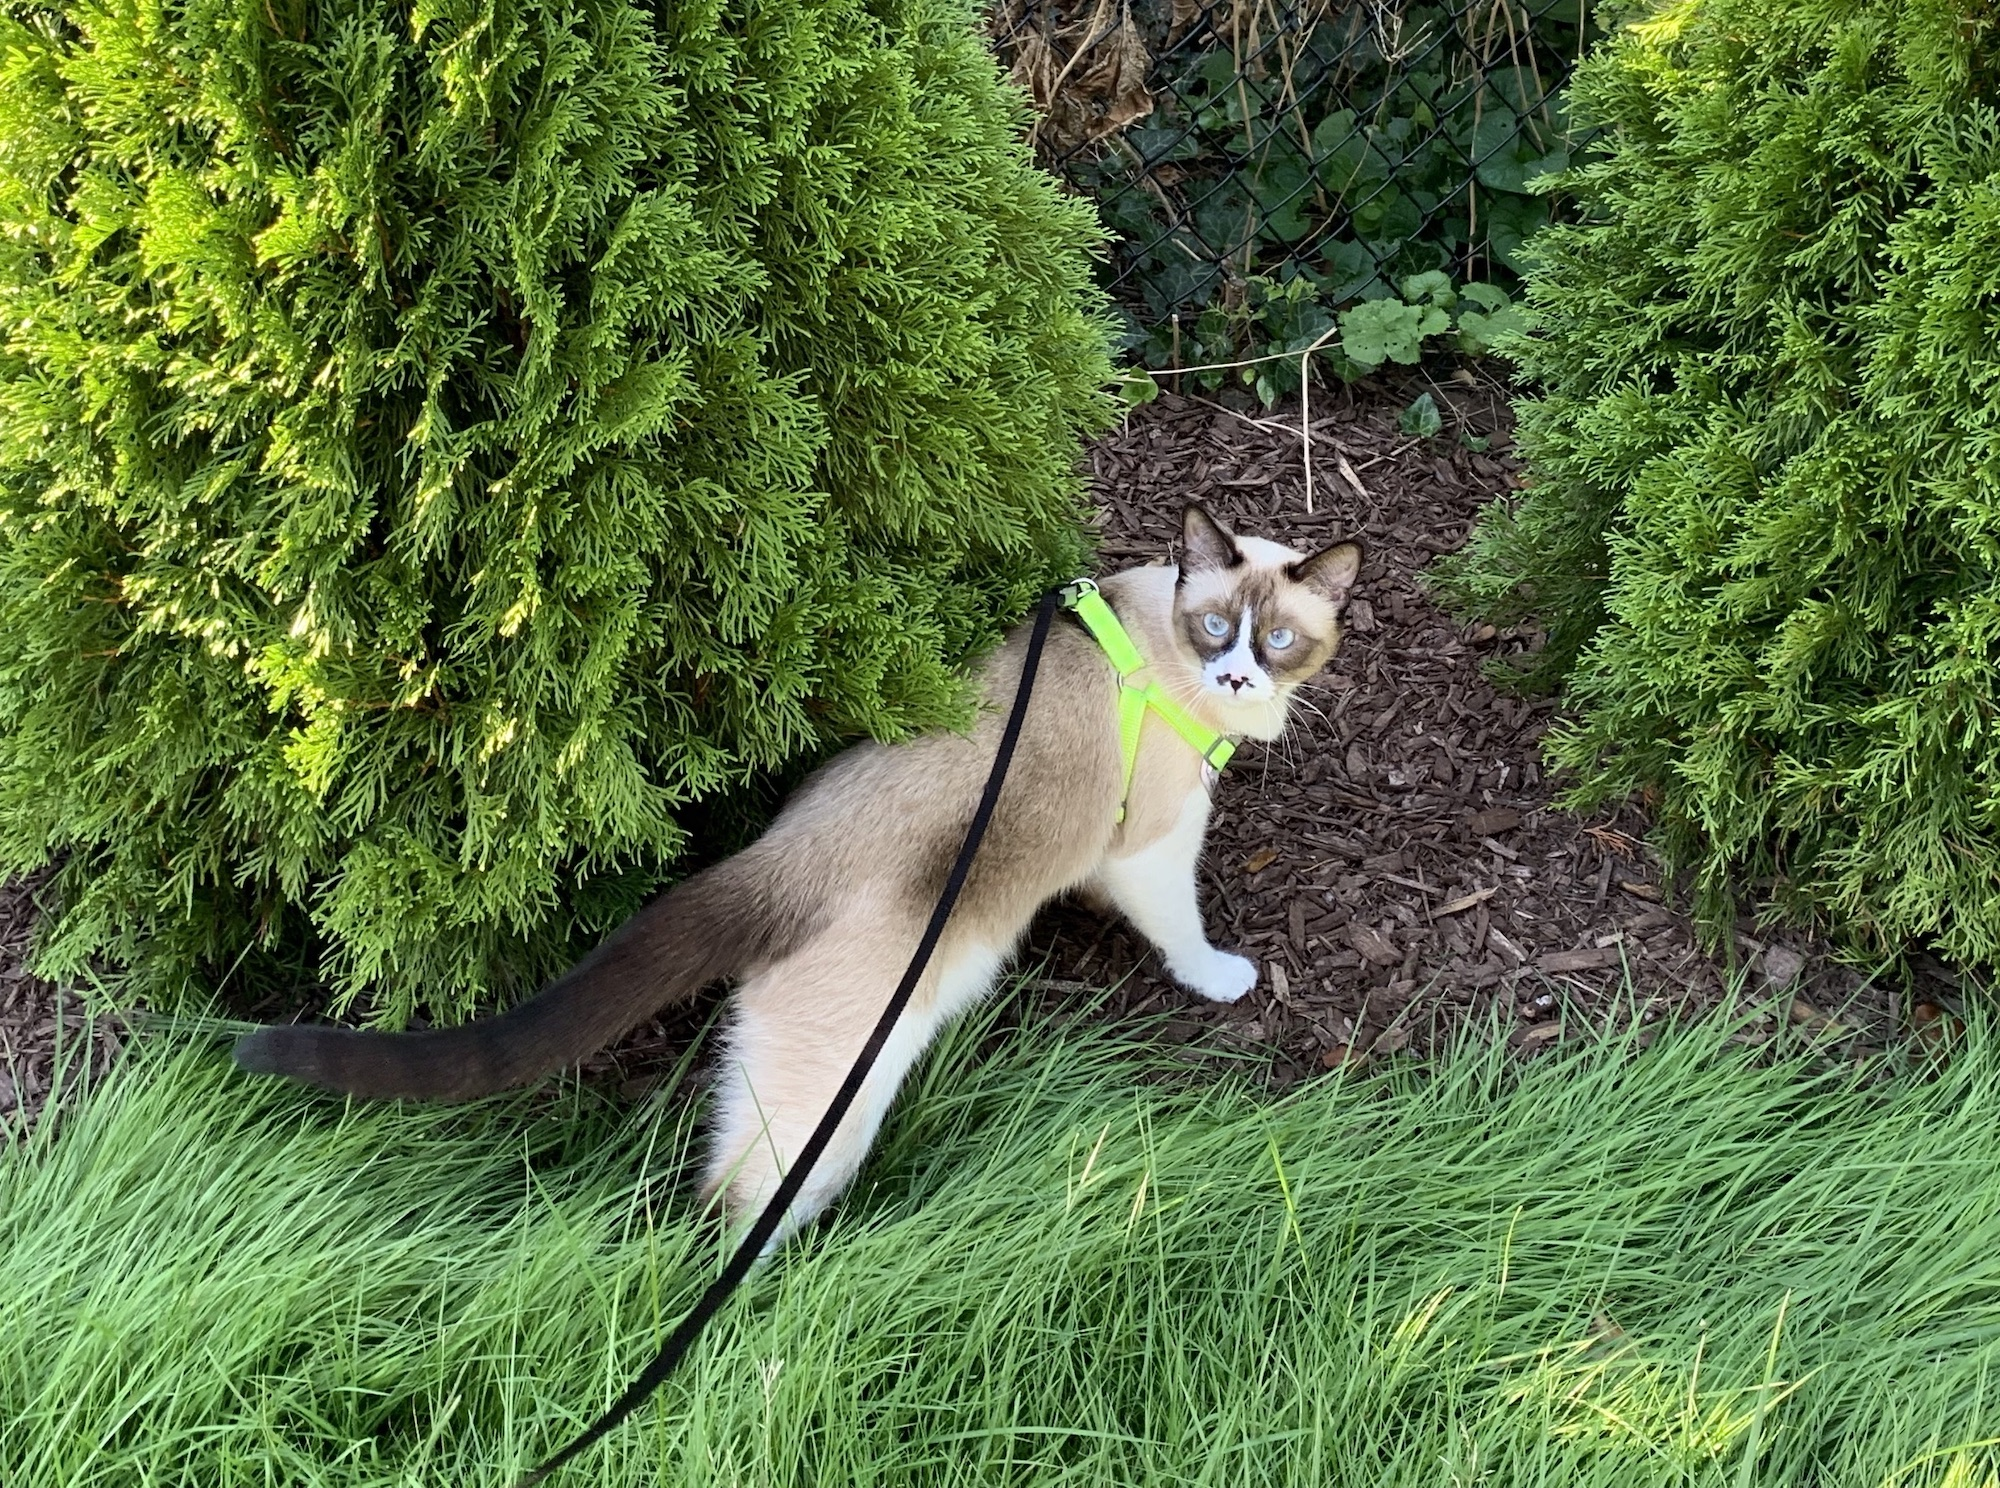 A very cute cat walks outside among bushes and grass. He is wearing a harness and leash, and looking back over his shoulder.